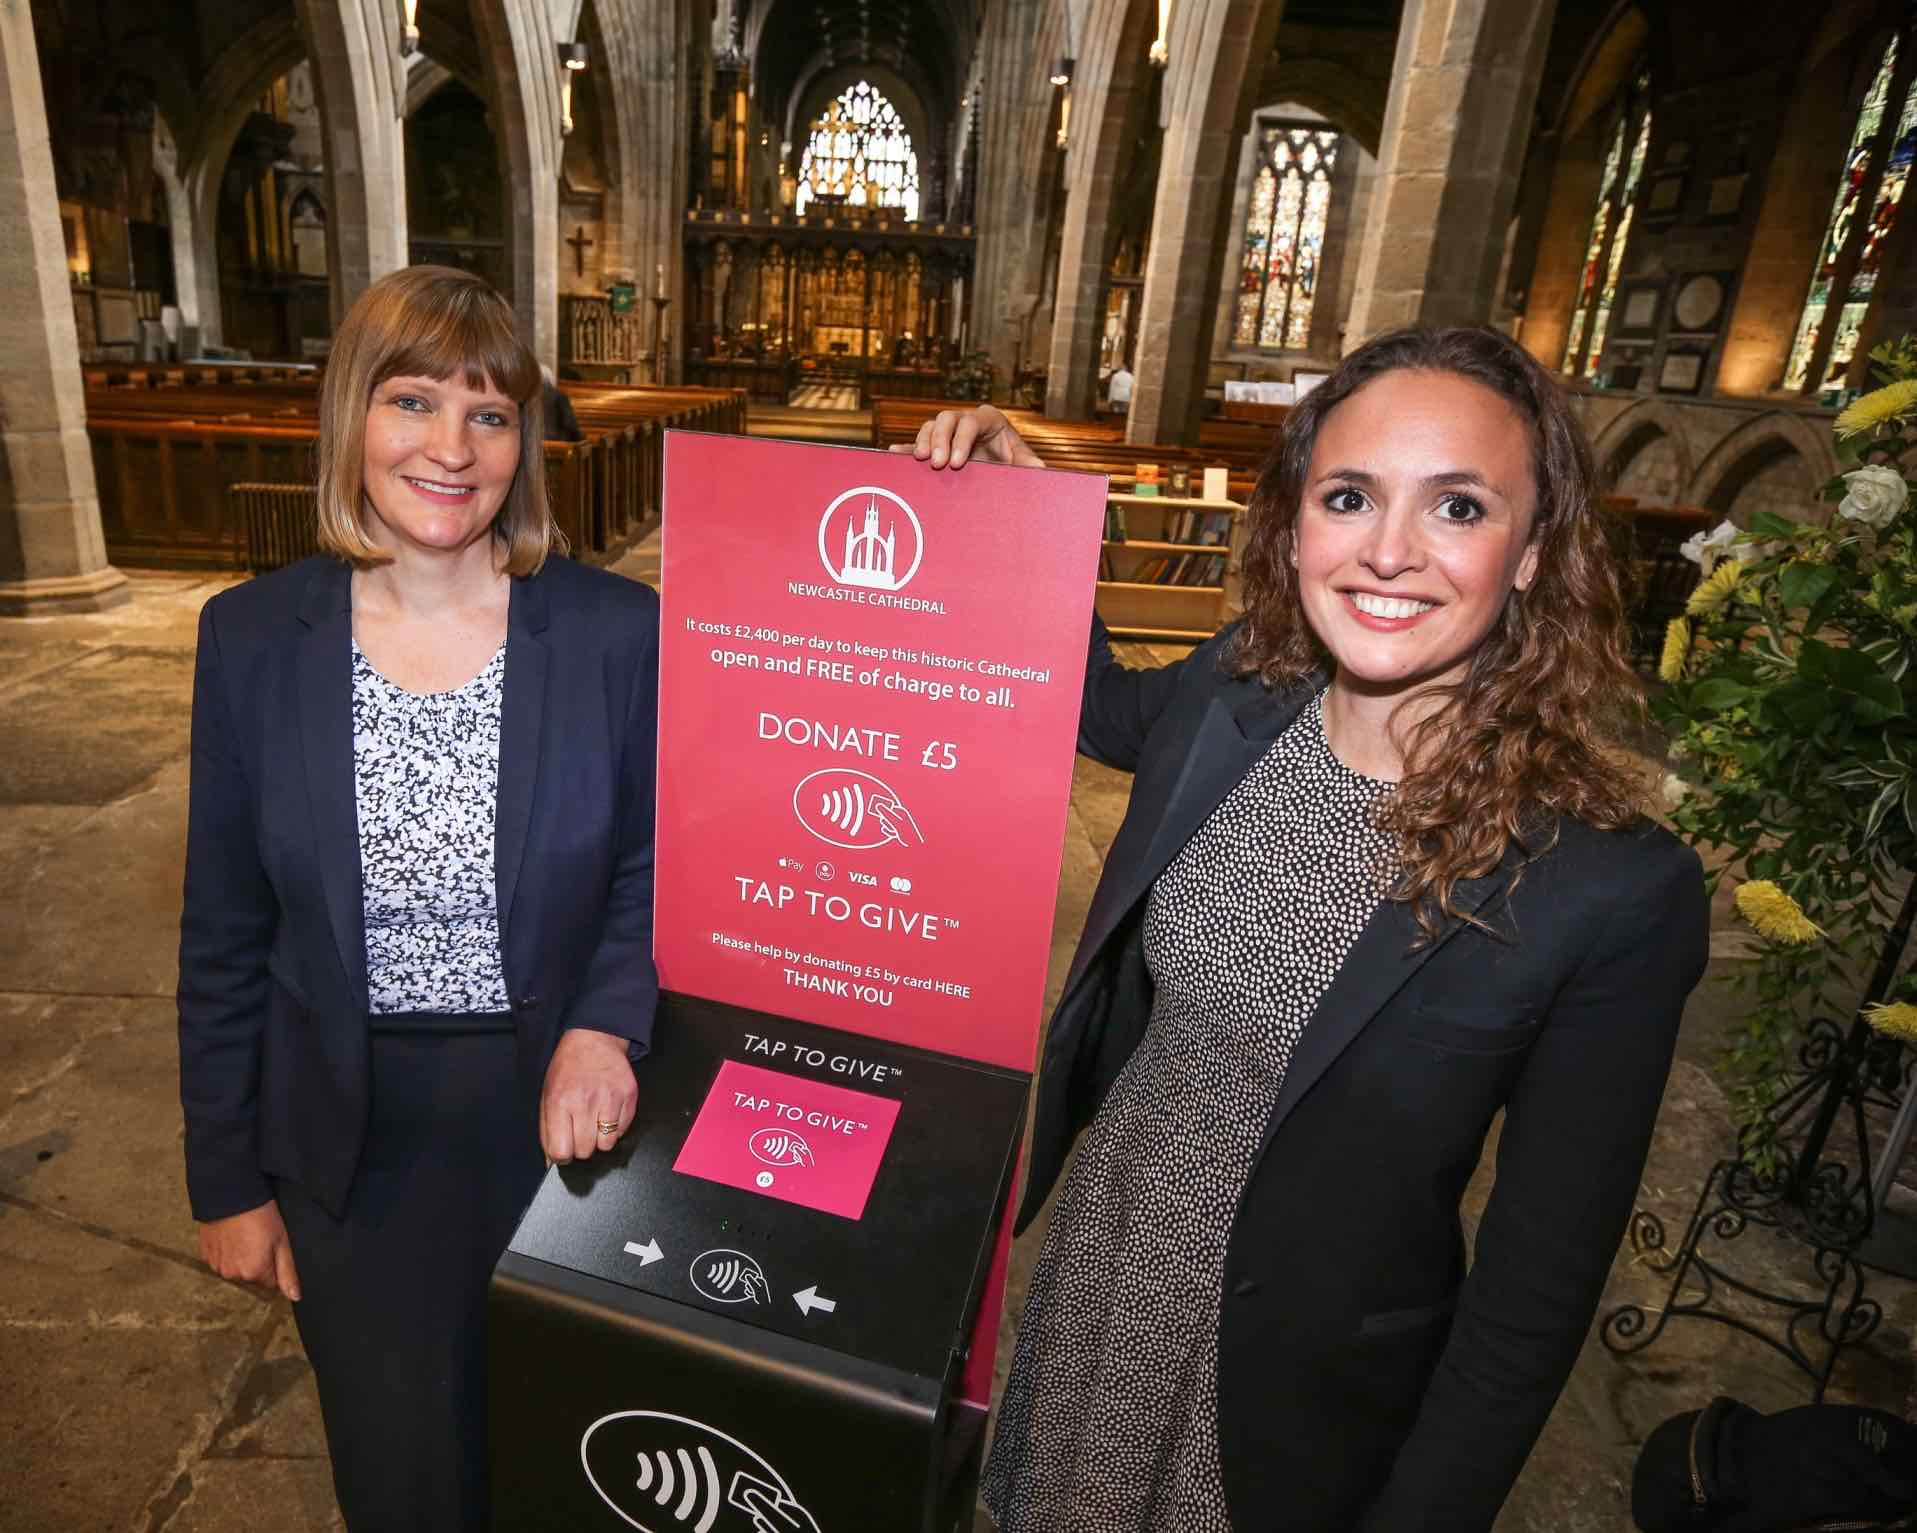 Digital accountancy expertise pays for charity payment technology start-up